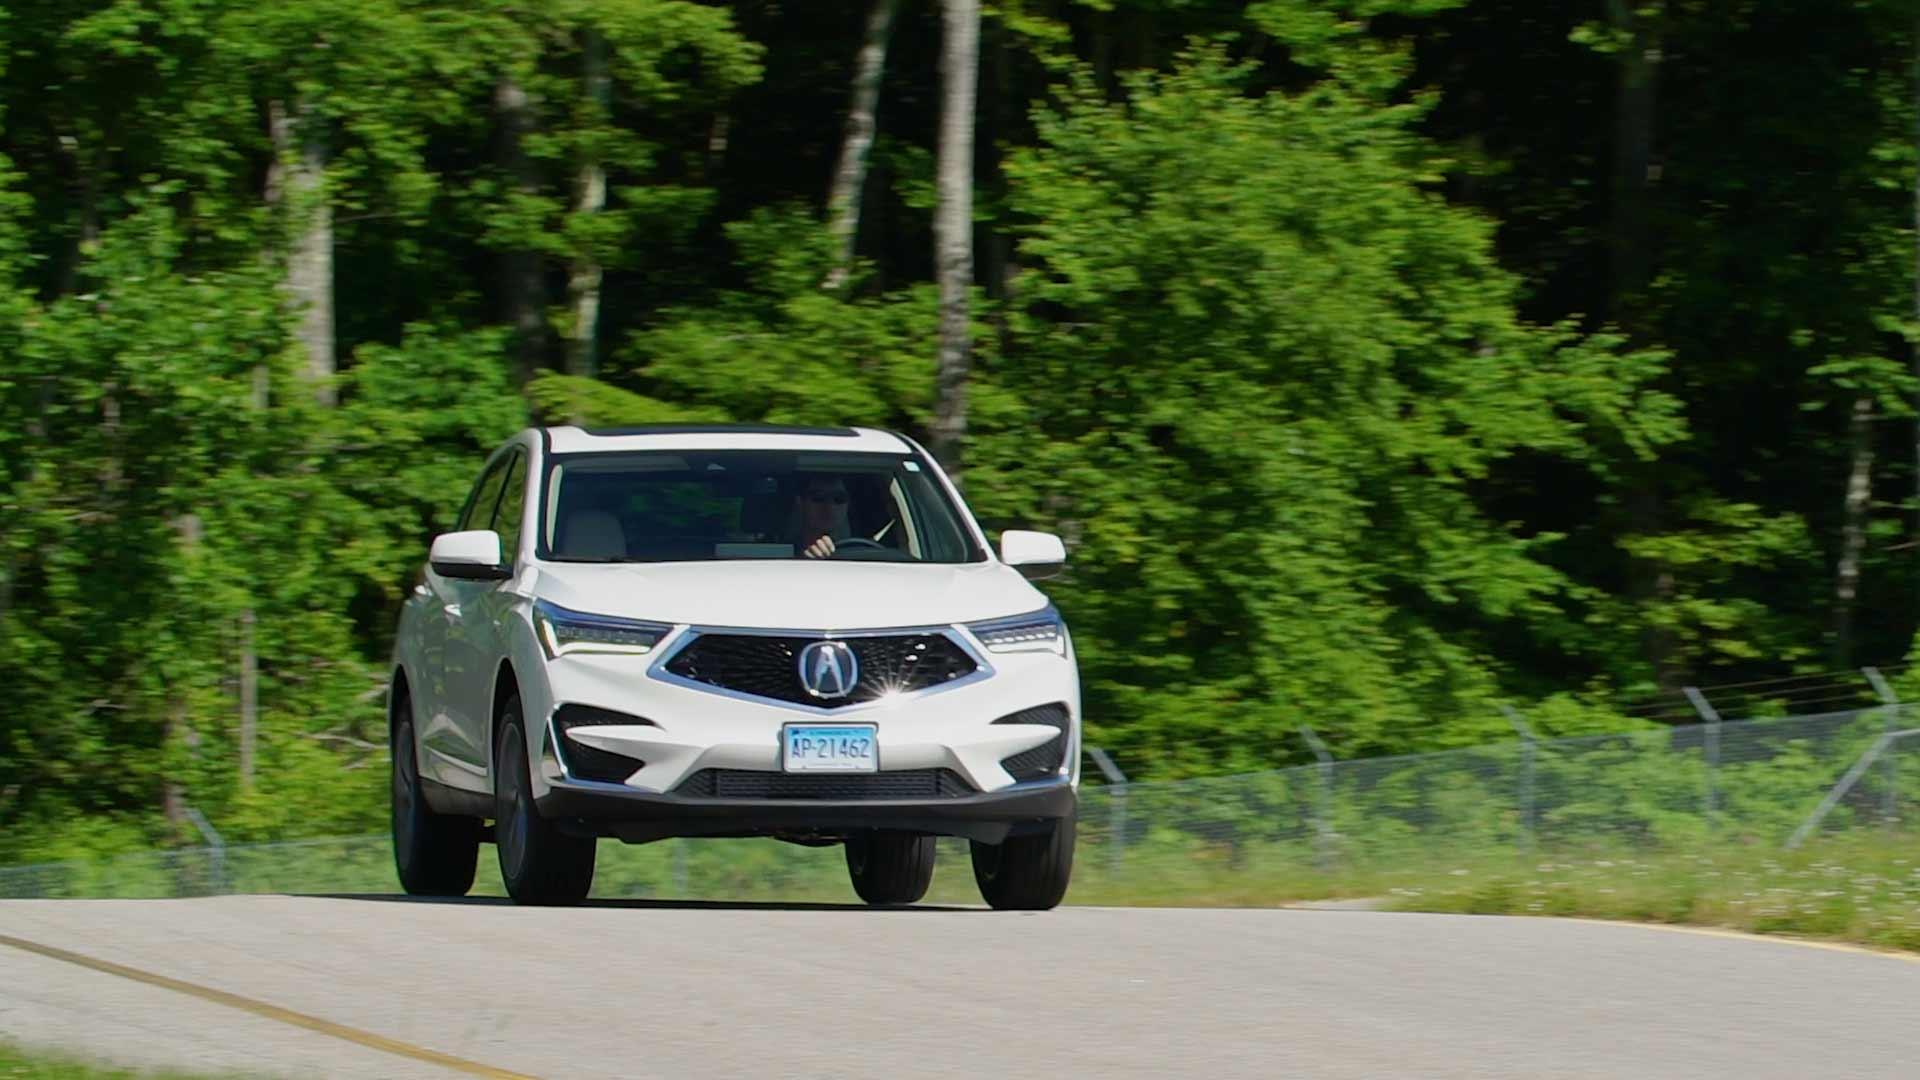 2018 Acura ILX Reviews Ratings Prices Consumer Reports